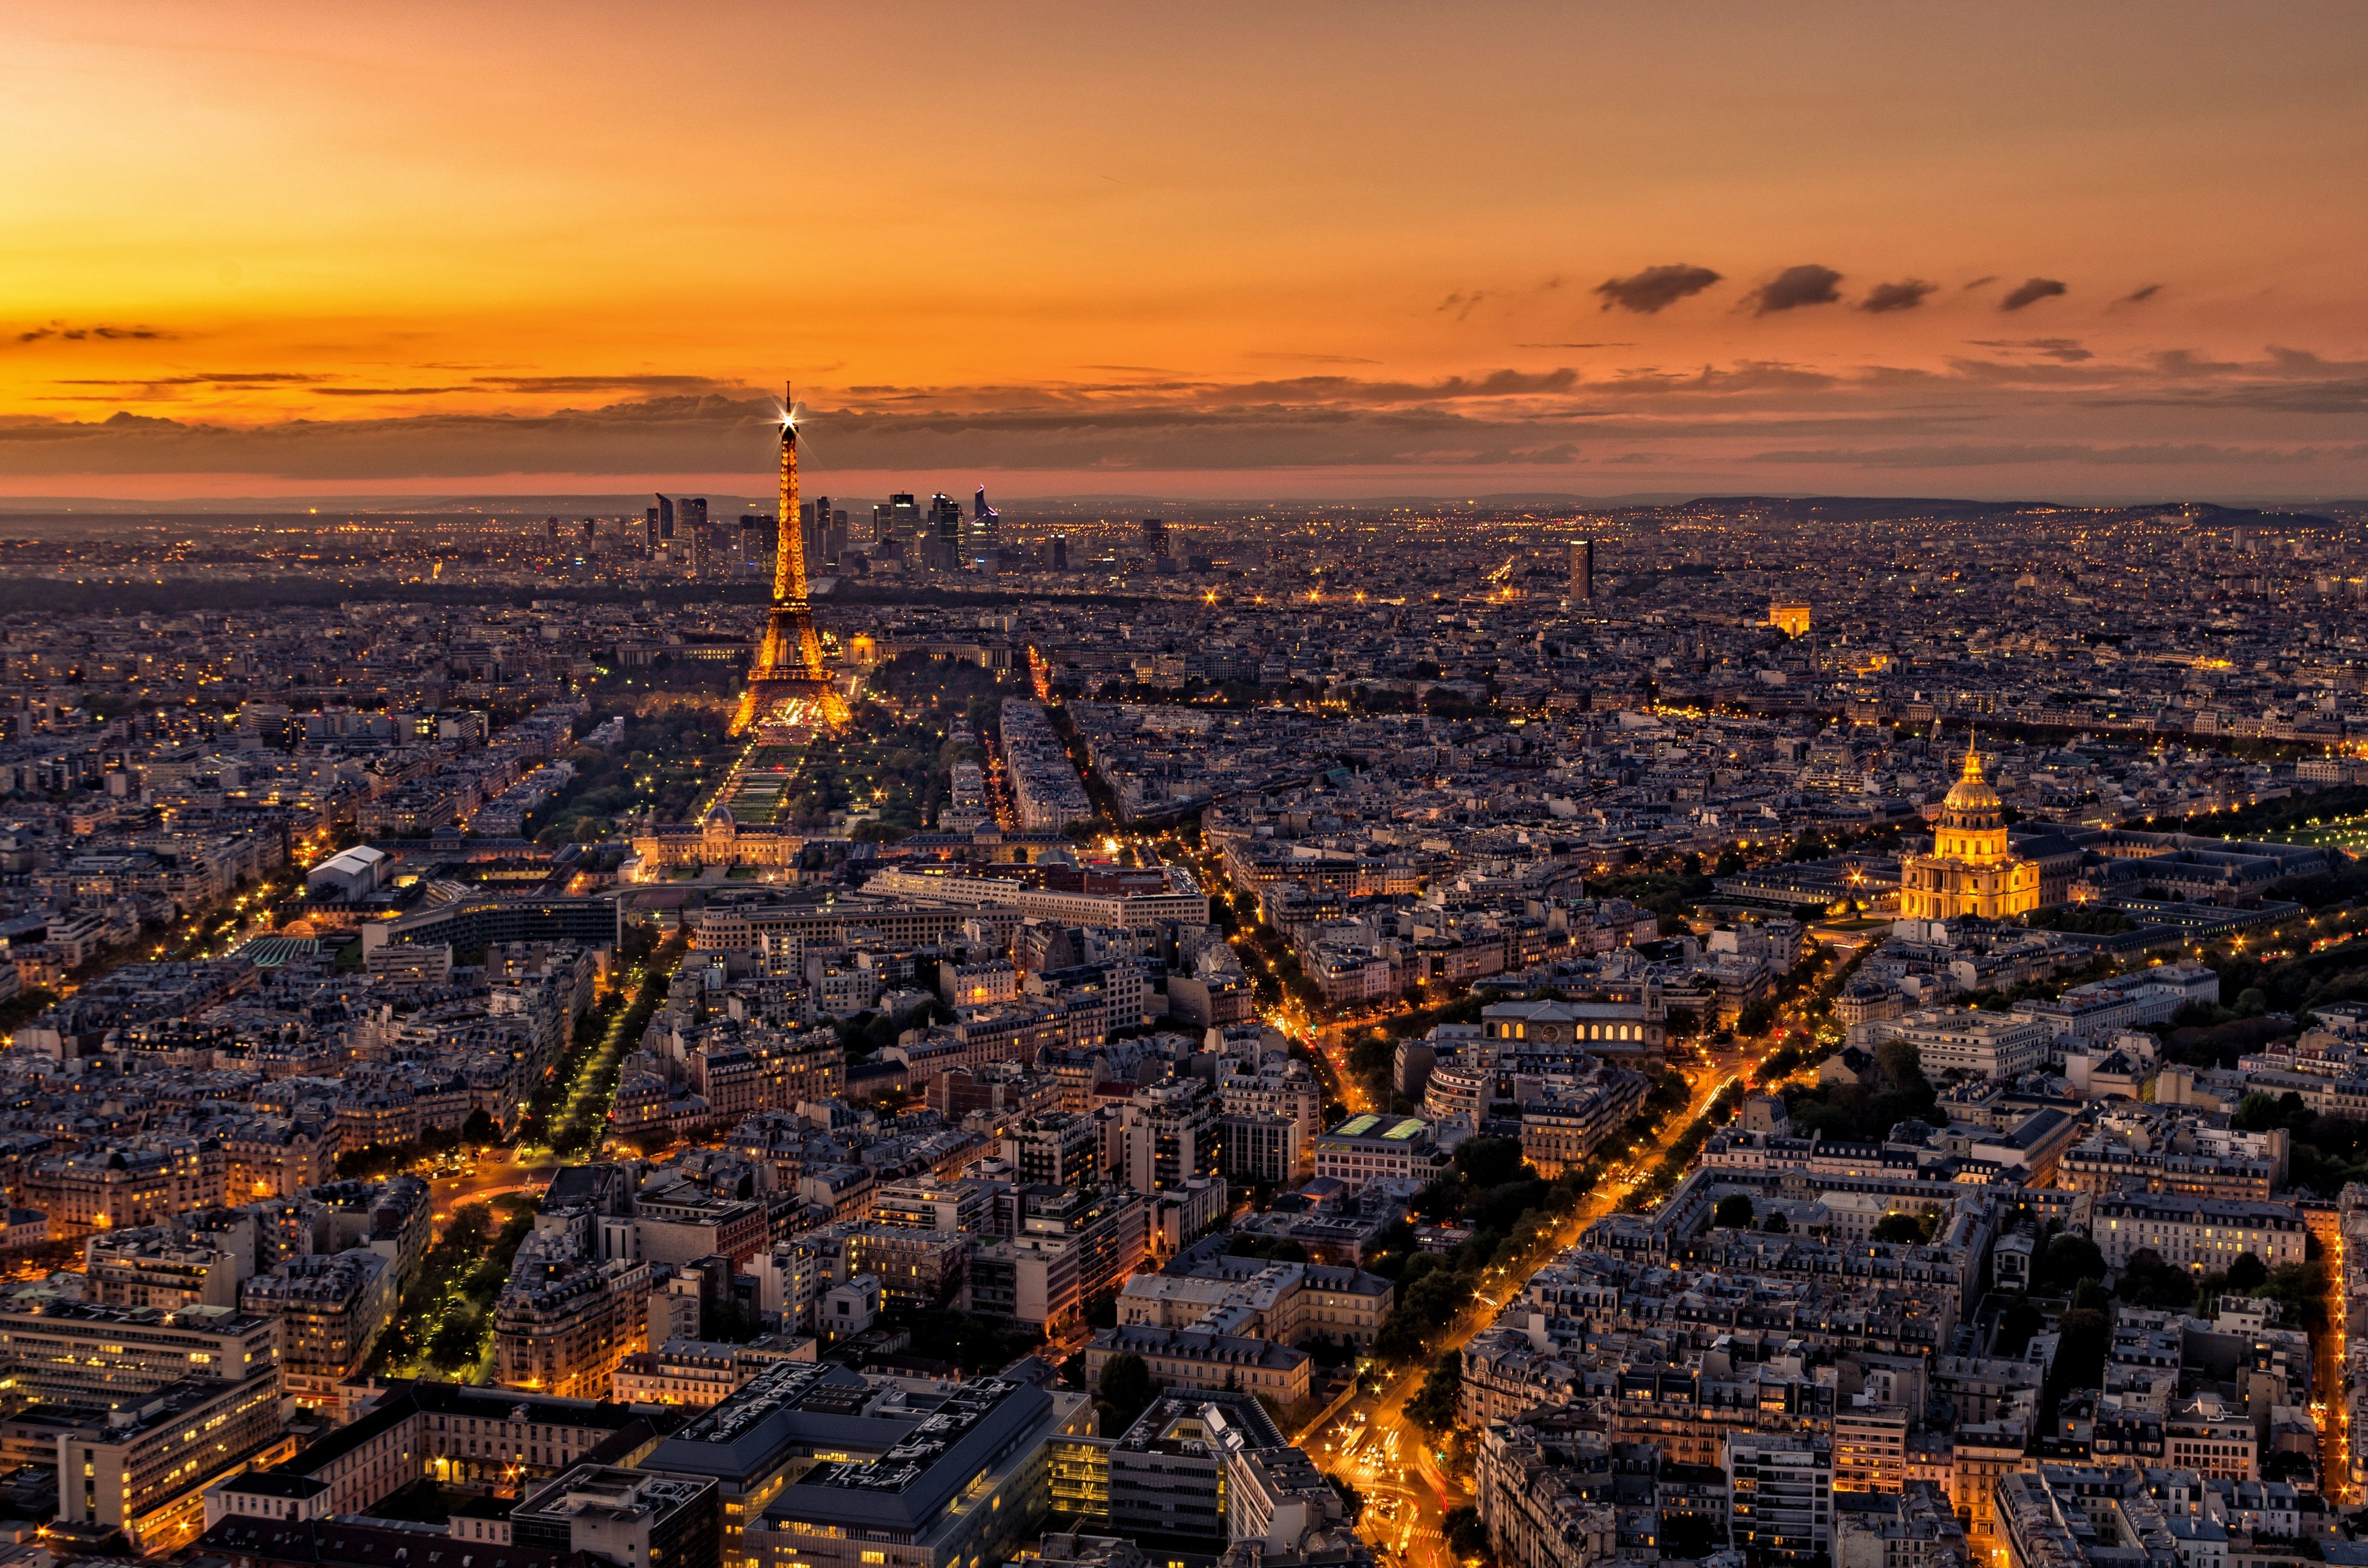 sunset, architecture, built structure, building exterior, sky, cityscape, city, orange color, high angle view, tower, sea, travel destinations, capital cities, water, famous place, dusk, international landmark, tall - high, cloud - sky, outdoors